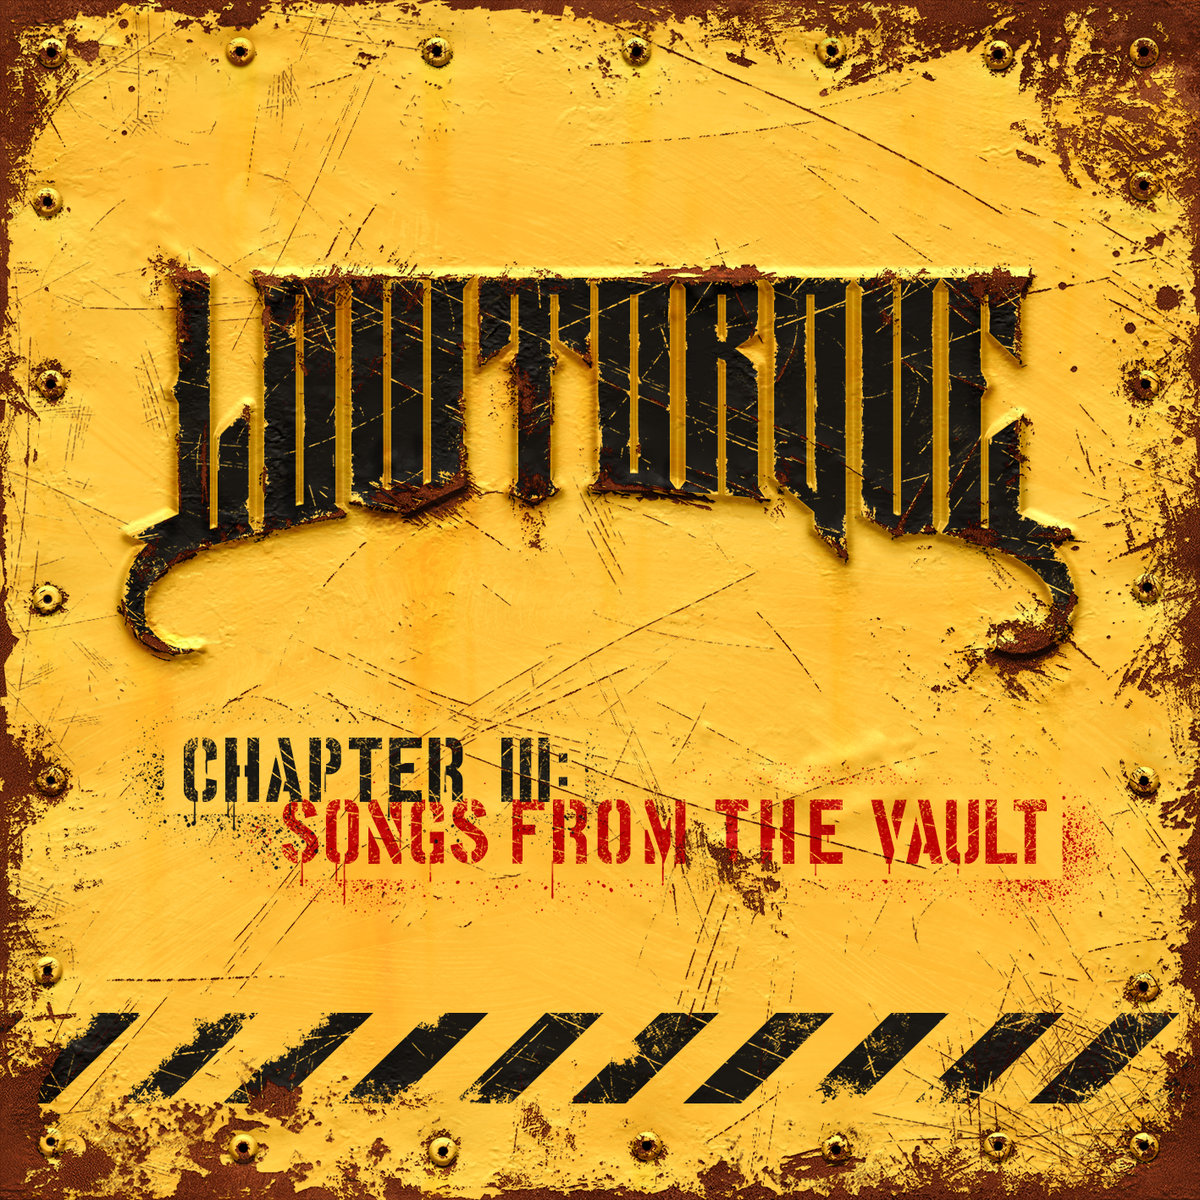 LOW TORQUE - Chapter III: Songs from the Vault cover